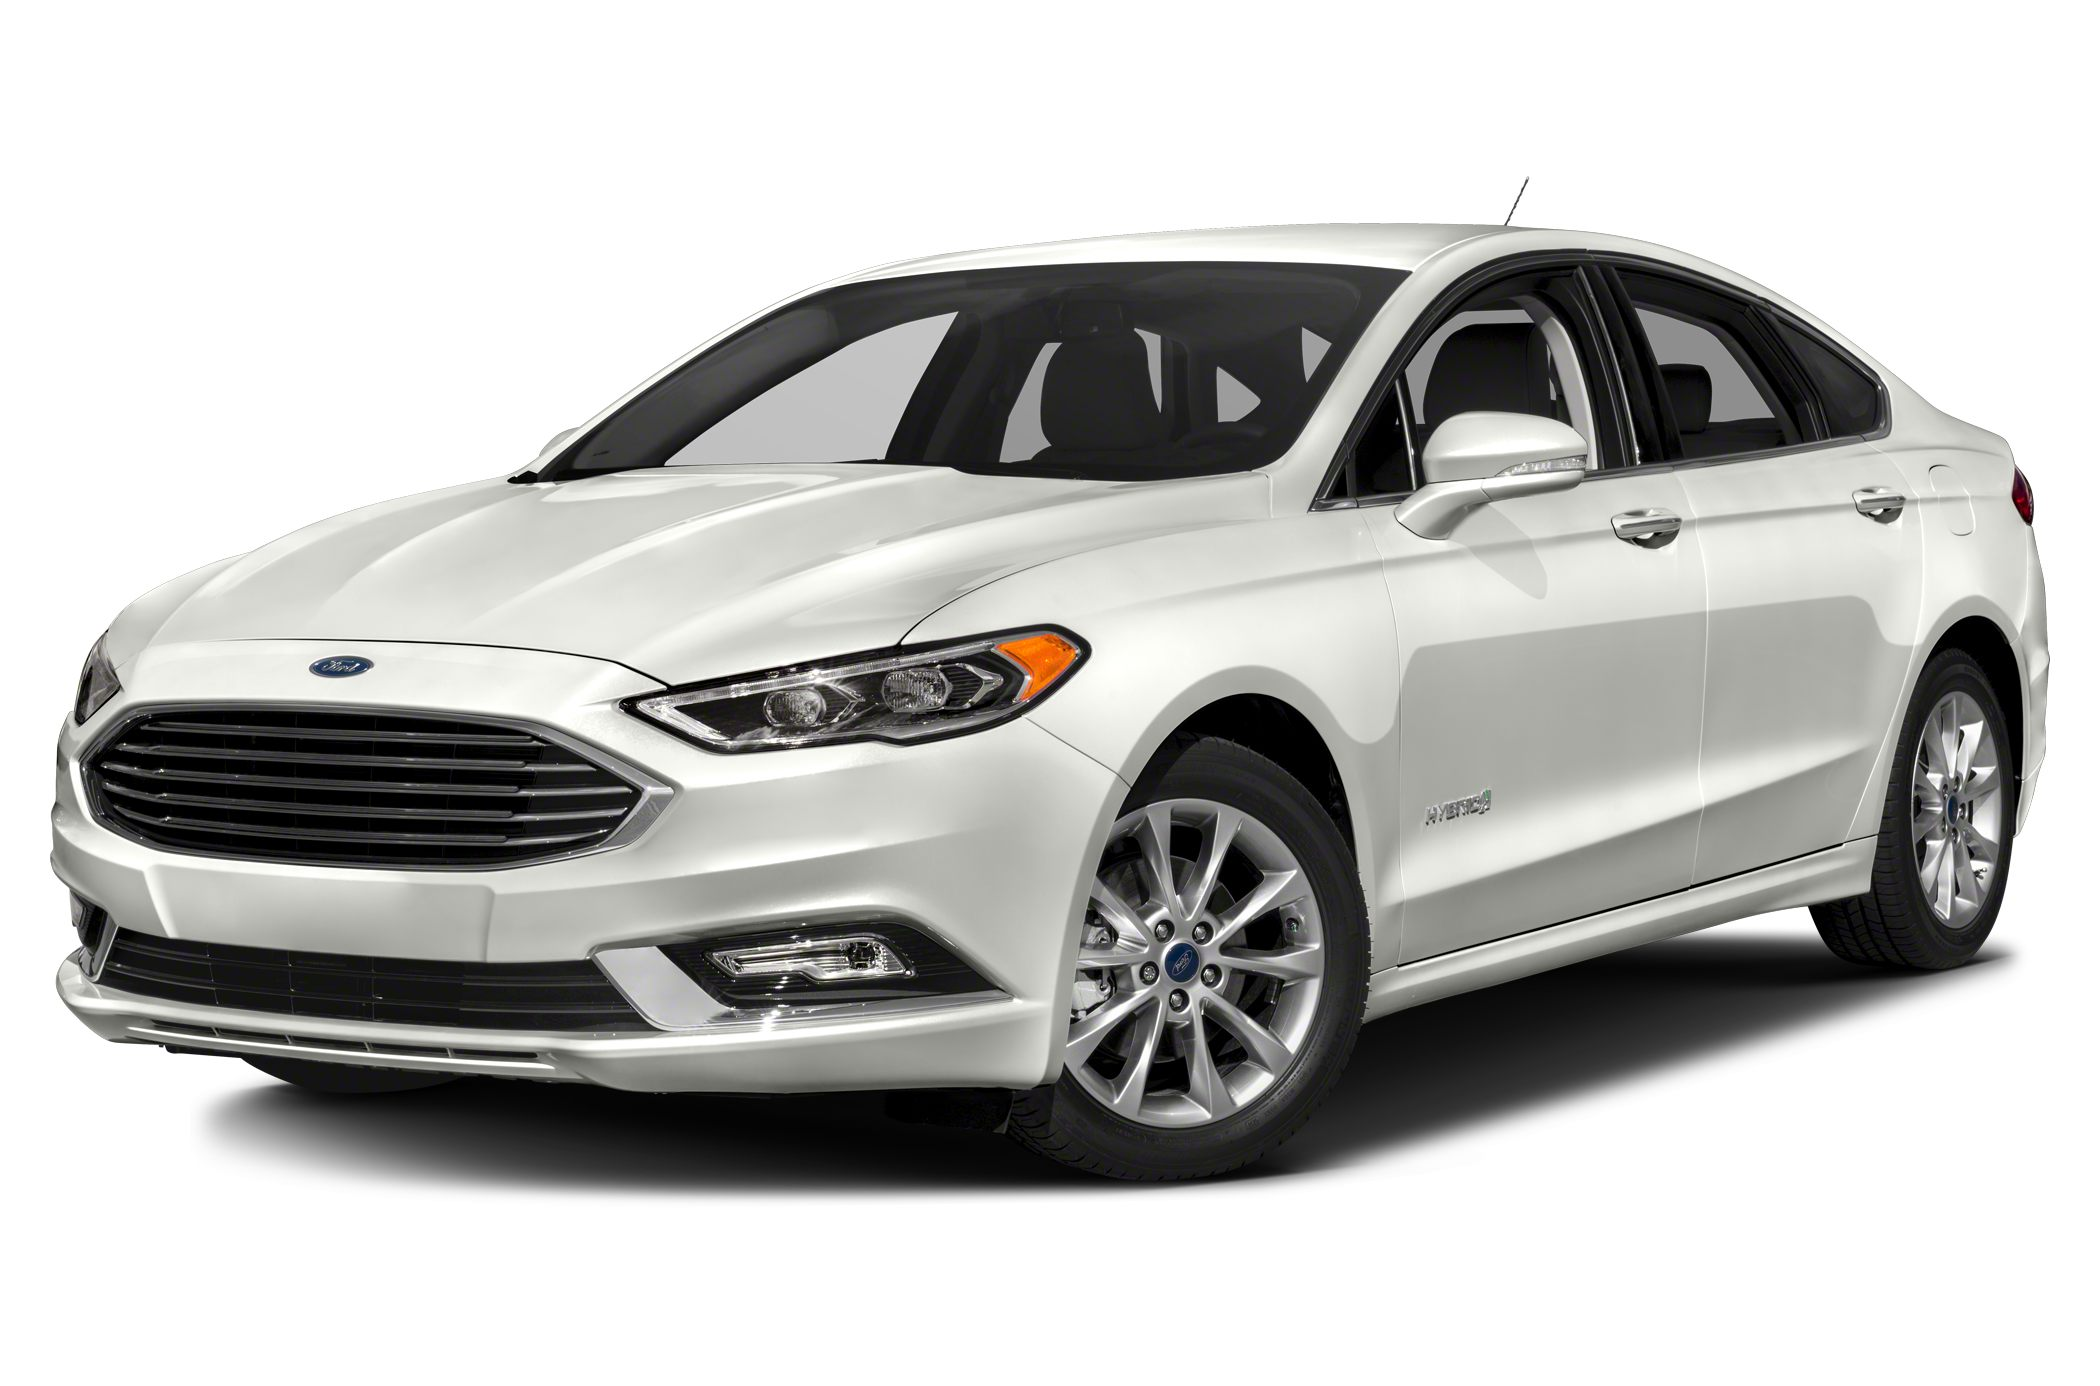 2018 Ford Fusion Hybrid Photos